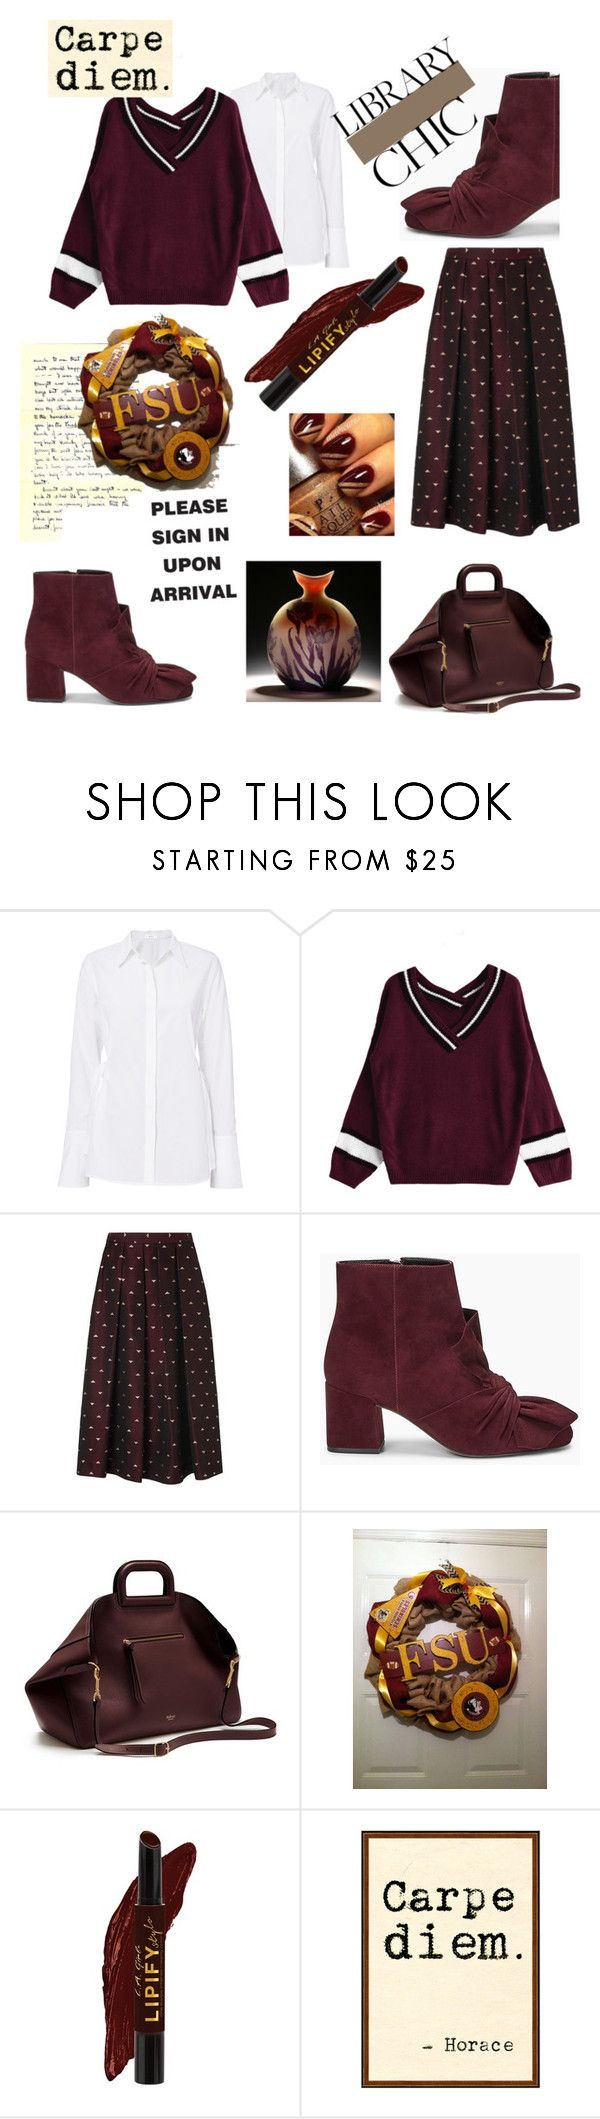 """""""Burgundy Library Chic📕📘"""" by mdfletch ❤ liked on Polyvore featuring L.K.Bennett, Rebecca Minkoff, Natural Curiosities and librarychic"""